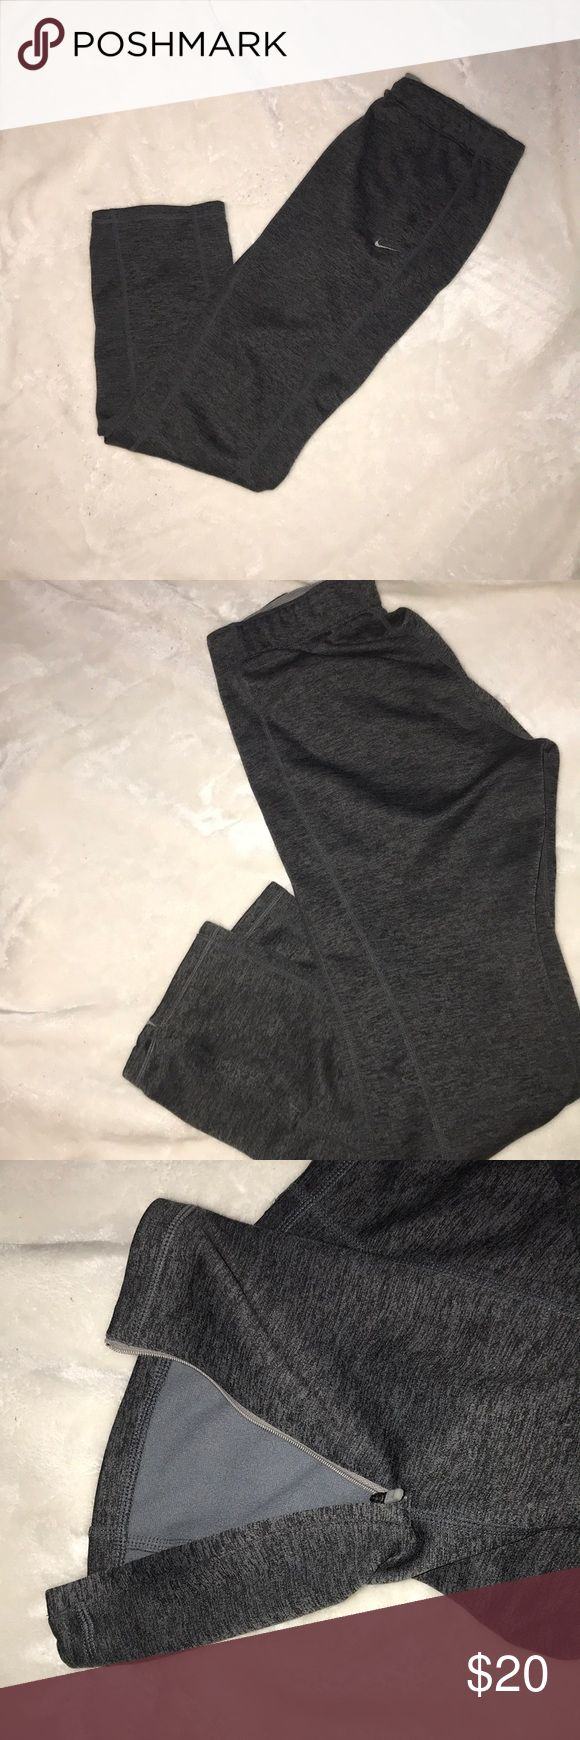 Nike joggers Grey nike jogger pants very comfortable frabric theres a zipper on the bottom of the pants that can open Nike Pants Track Pants & Joggers